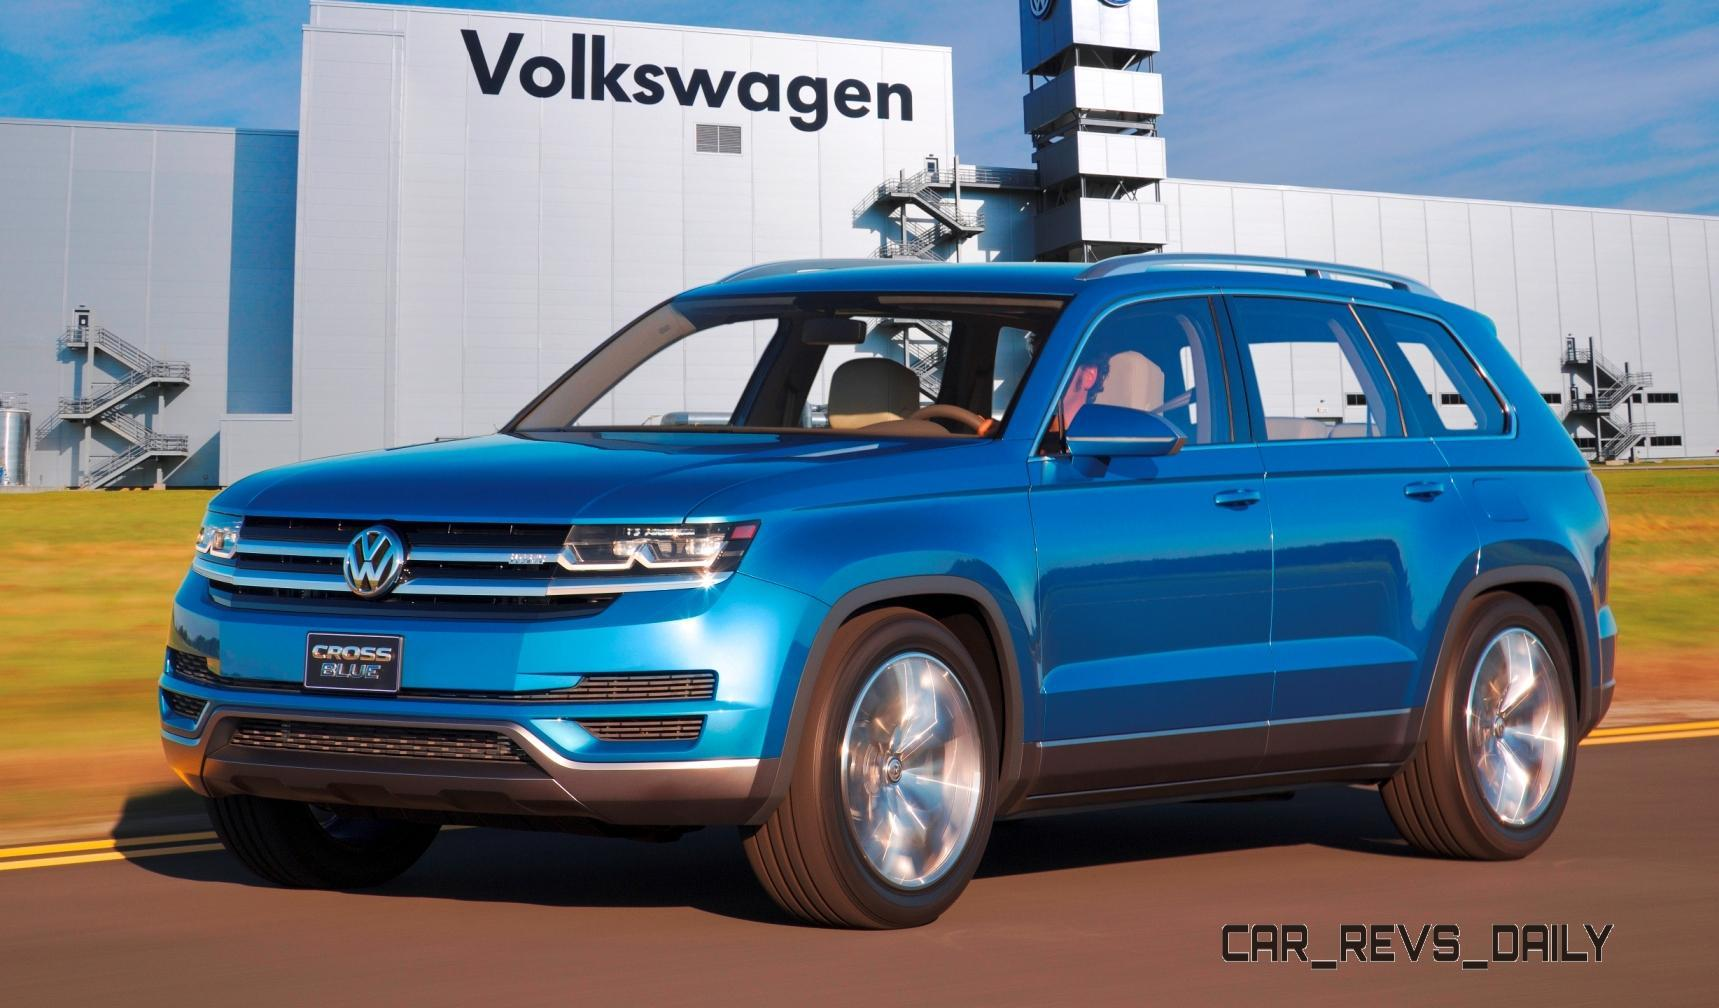 official volkswagen mid size suv will seat 7 be built in usa name tbd. Black Bedroom Furniture Sets. Home Design Ideas